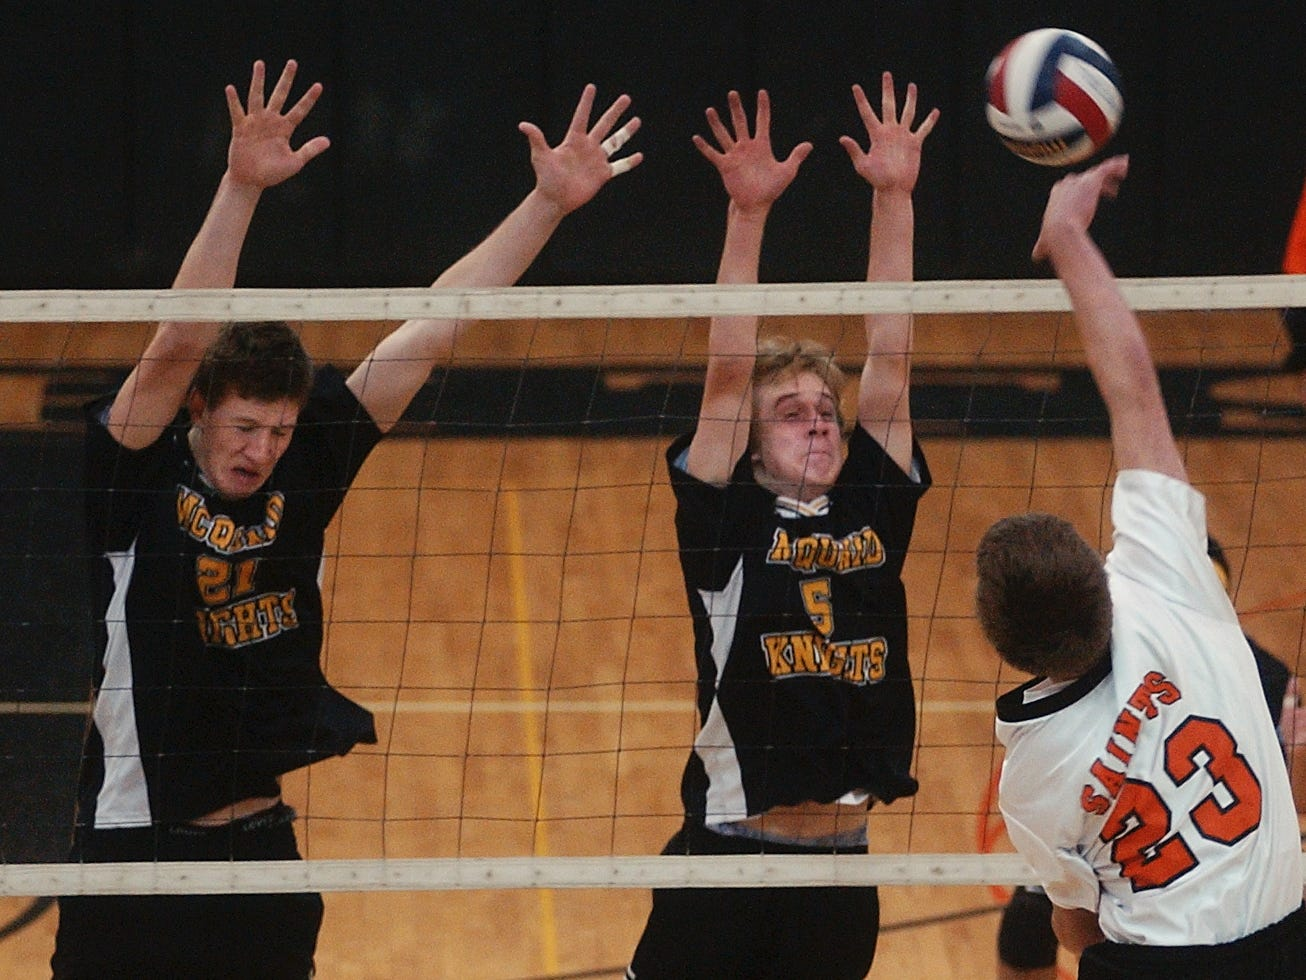 McQuaid's Jack Marchand and Ryan Barney set up a block during a 2006 match against Churchville-Chili.